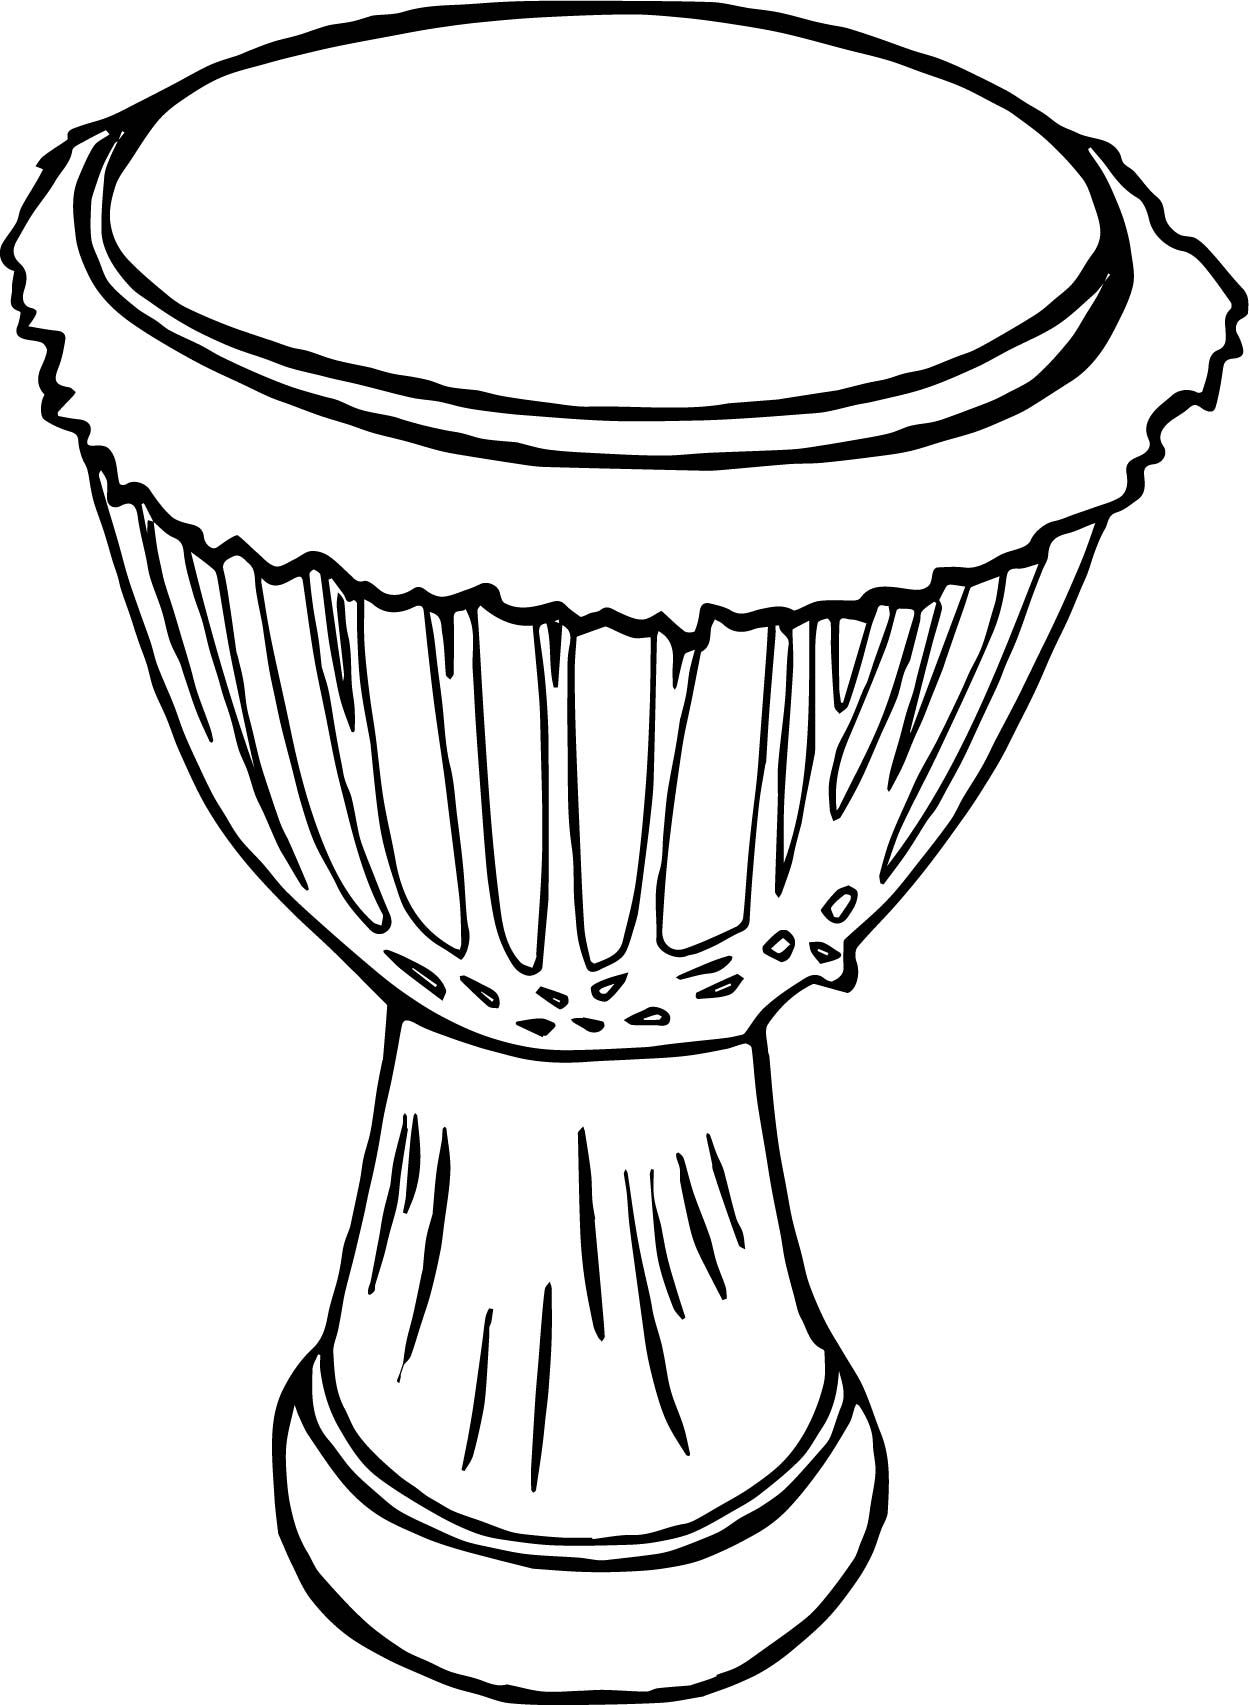 Awesome African Drum Coloring Page African Drum Drum Drawing